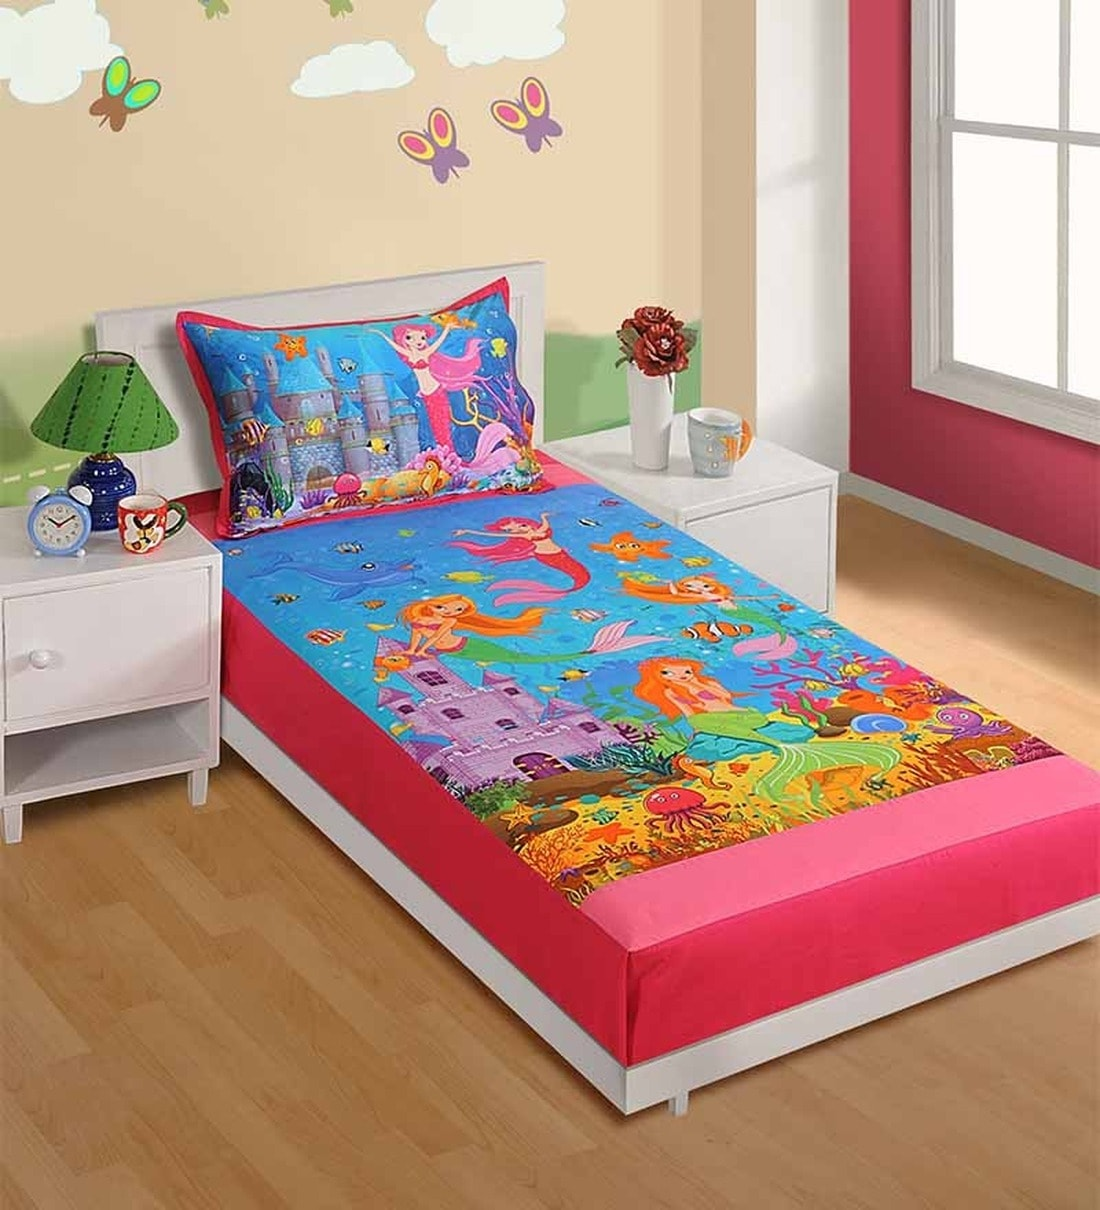 Buy Cotton Single Size Bedsheet In Pink With Pillow Covers By Swayam Online Kids Single Bedsheets Kids Single Bedsheets Kids Furniture Pepperfry Product